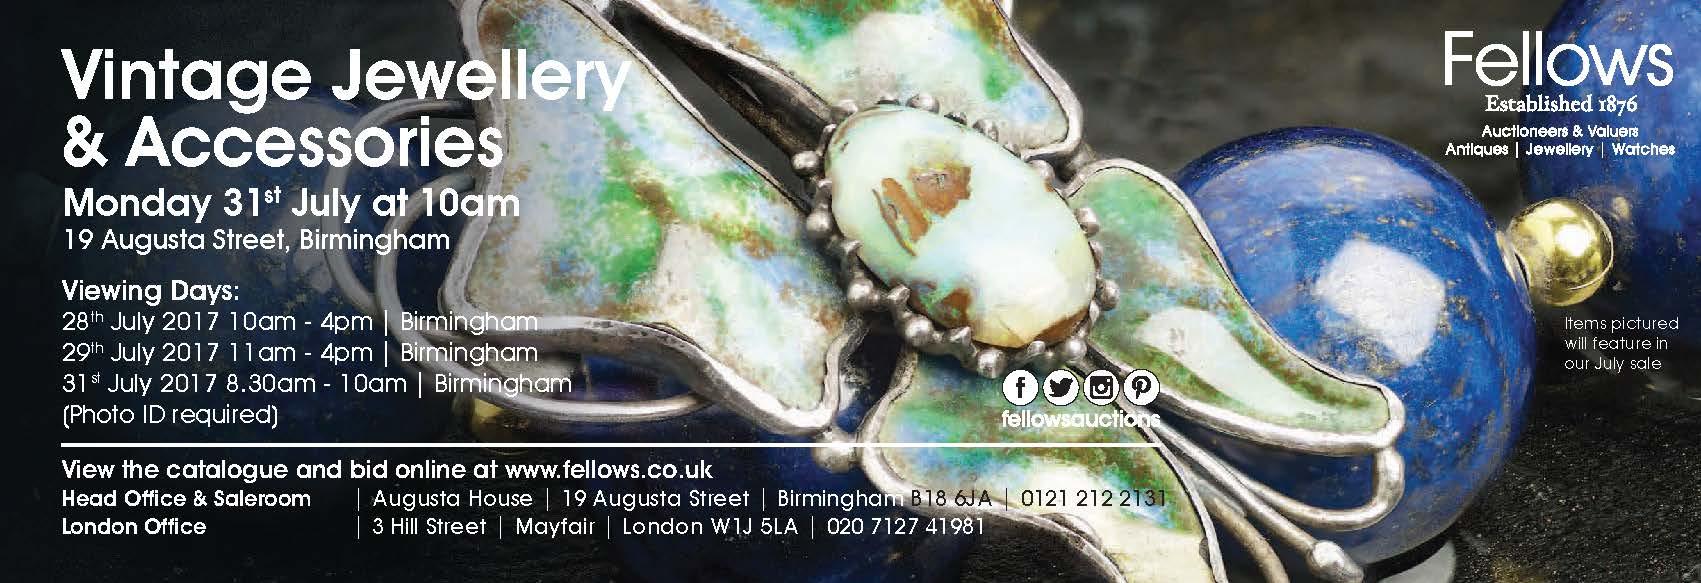 Fellows - Vintage Jewellery & Accessories.jpg